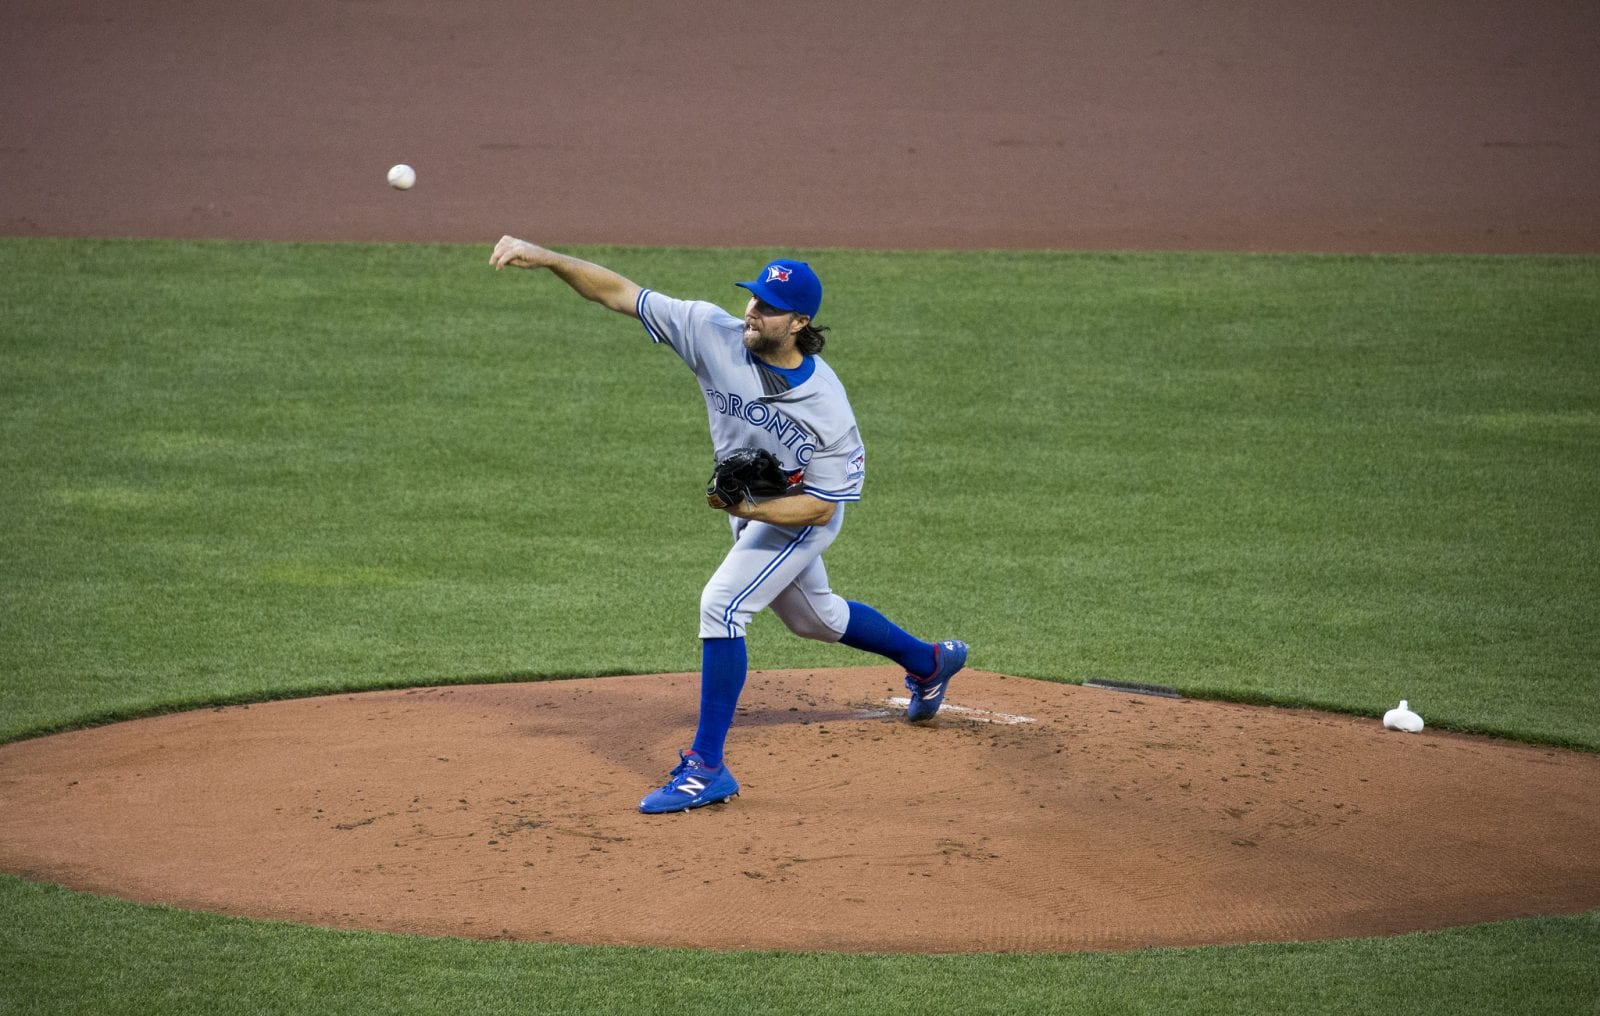 MLB pitcher R A  Dickey spending more time with family